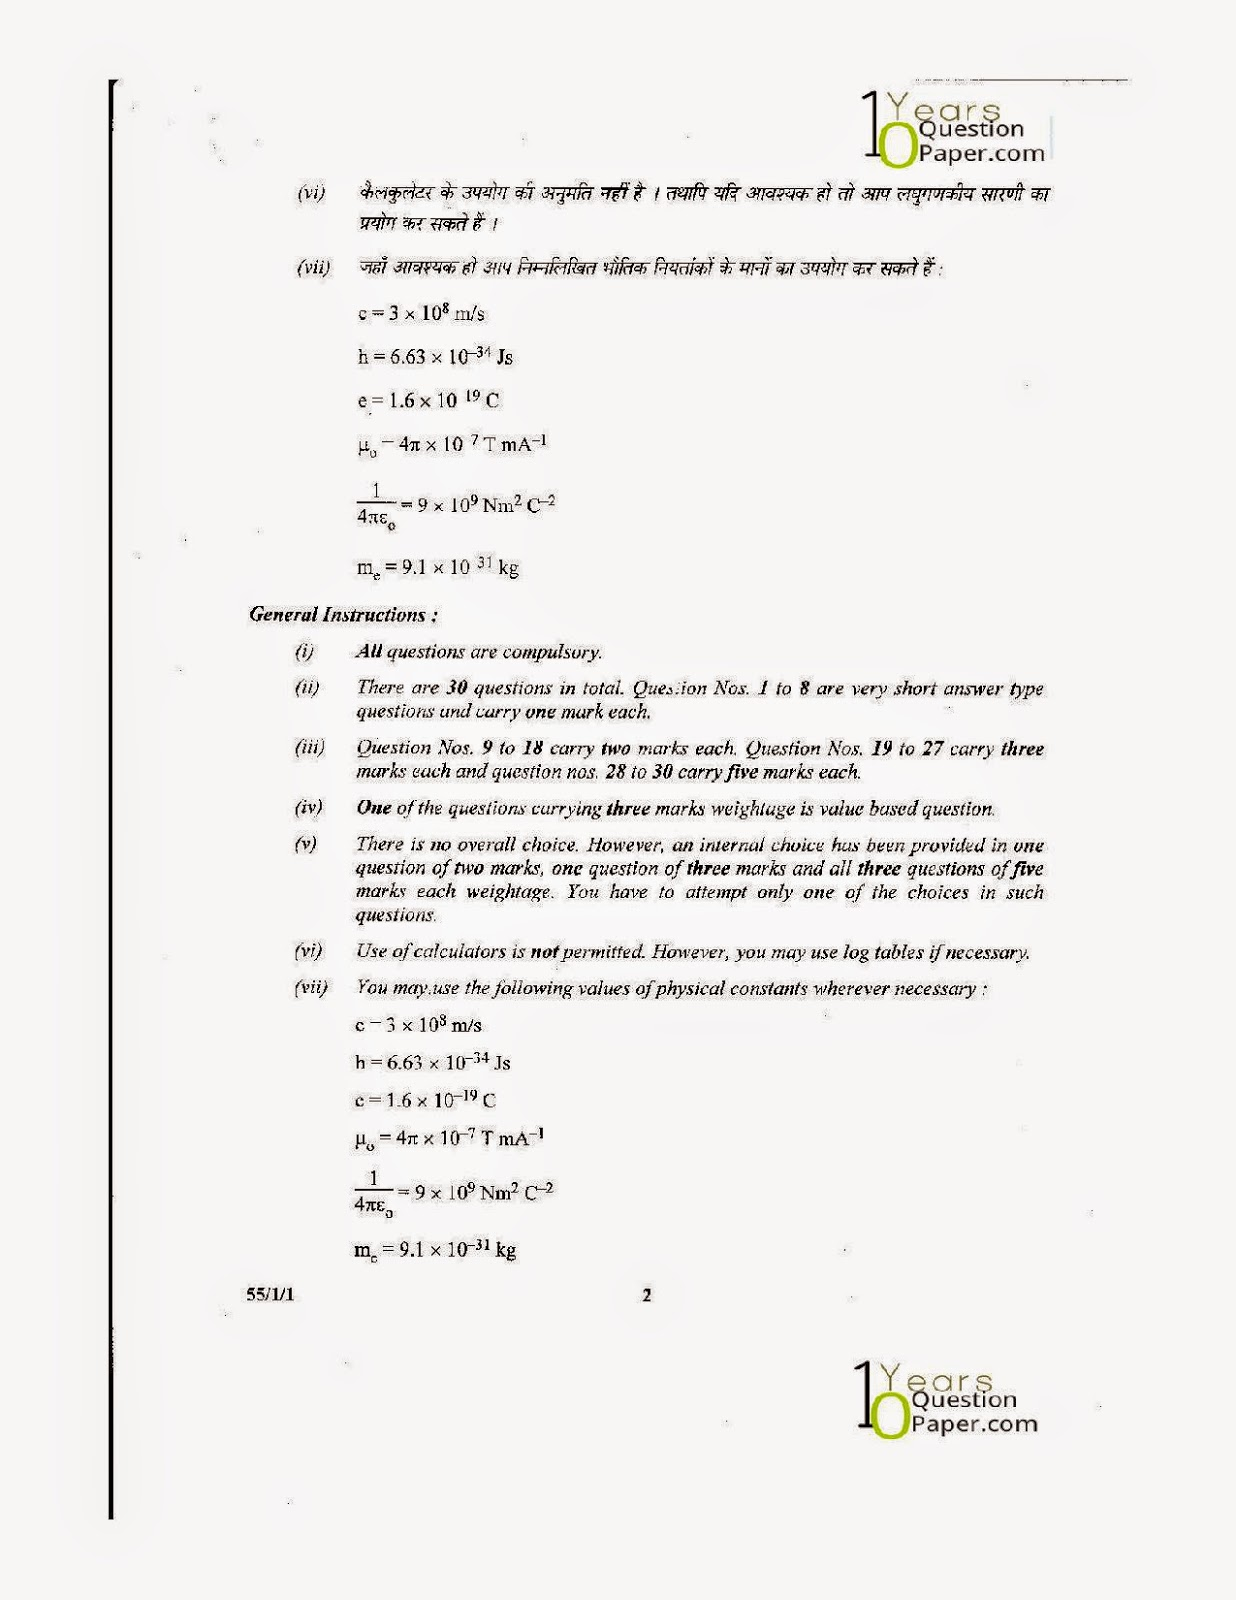 cbse physics theory class board question paper set  cbse class 12th physics solved question paper 2014